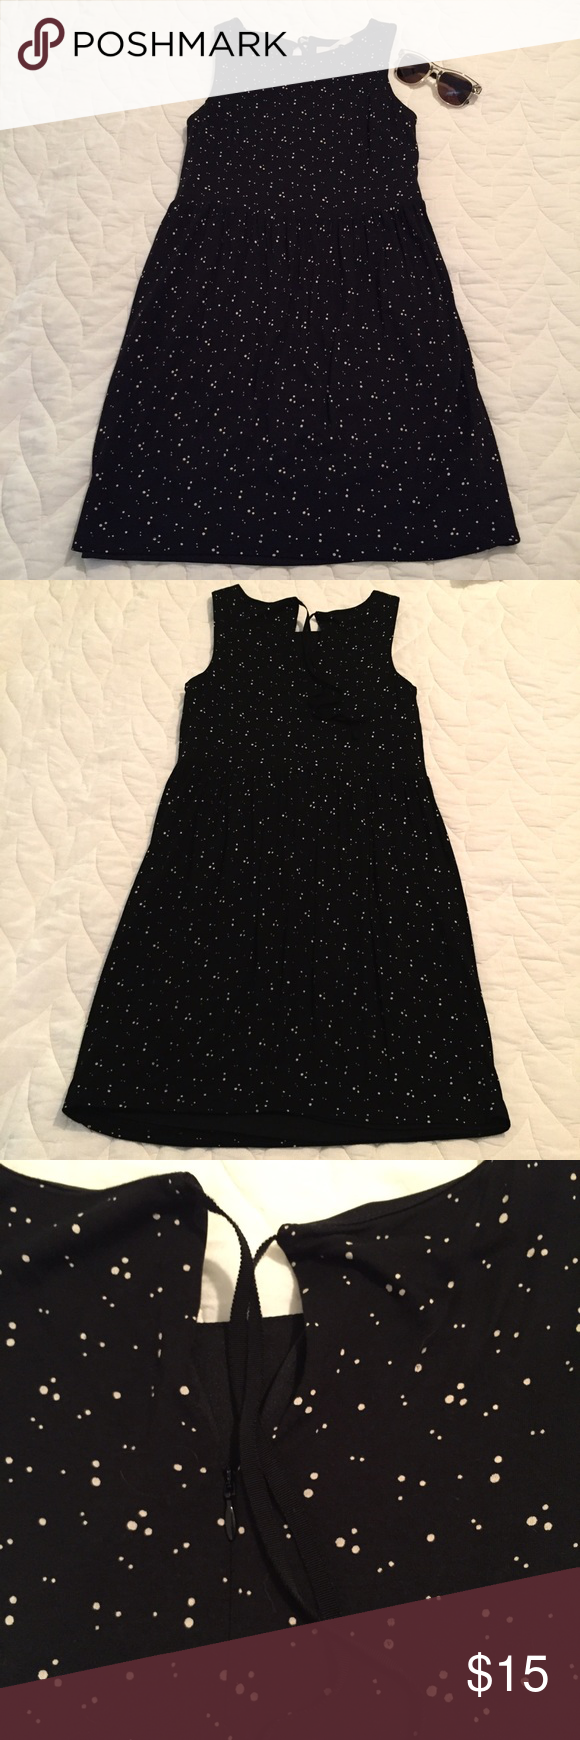 """LOFT Dress Cute sleeveless, dot patterned dress from LOFT. Style with a cardigan and boots for fall! In good condition. Smoke free home.  Bust - 15""""   Length - 32"""" LOFT Dresses"""